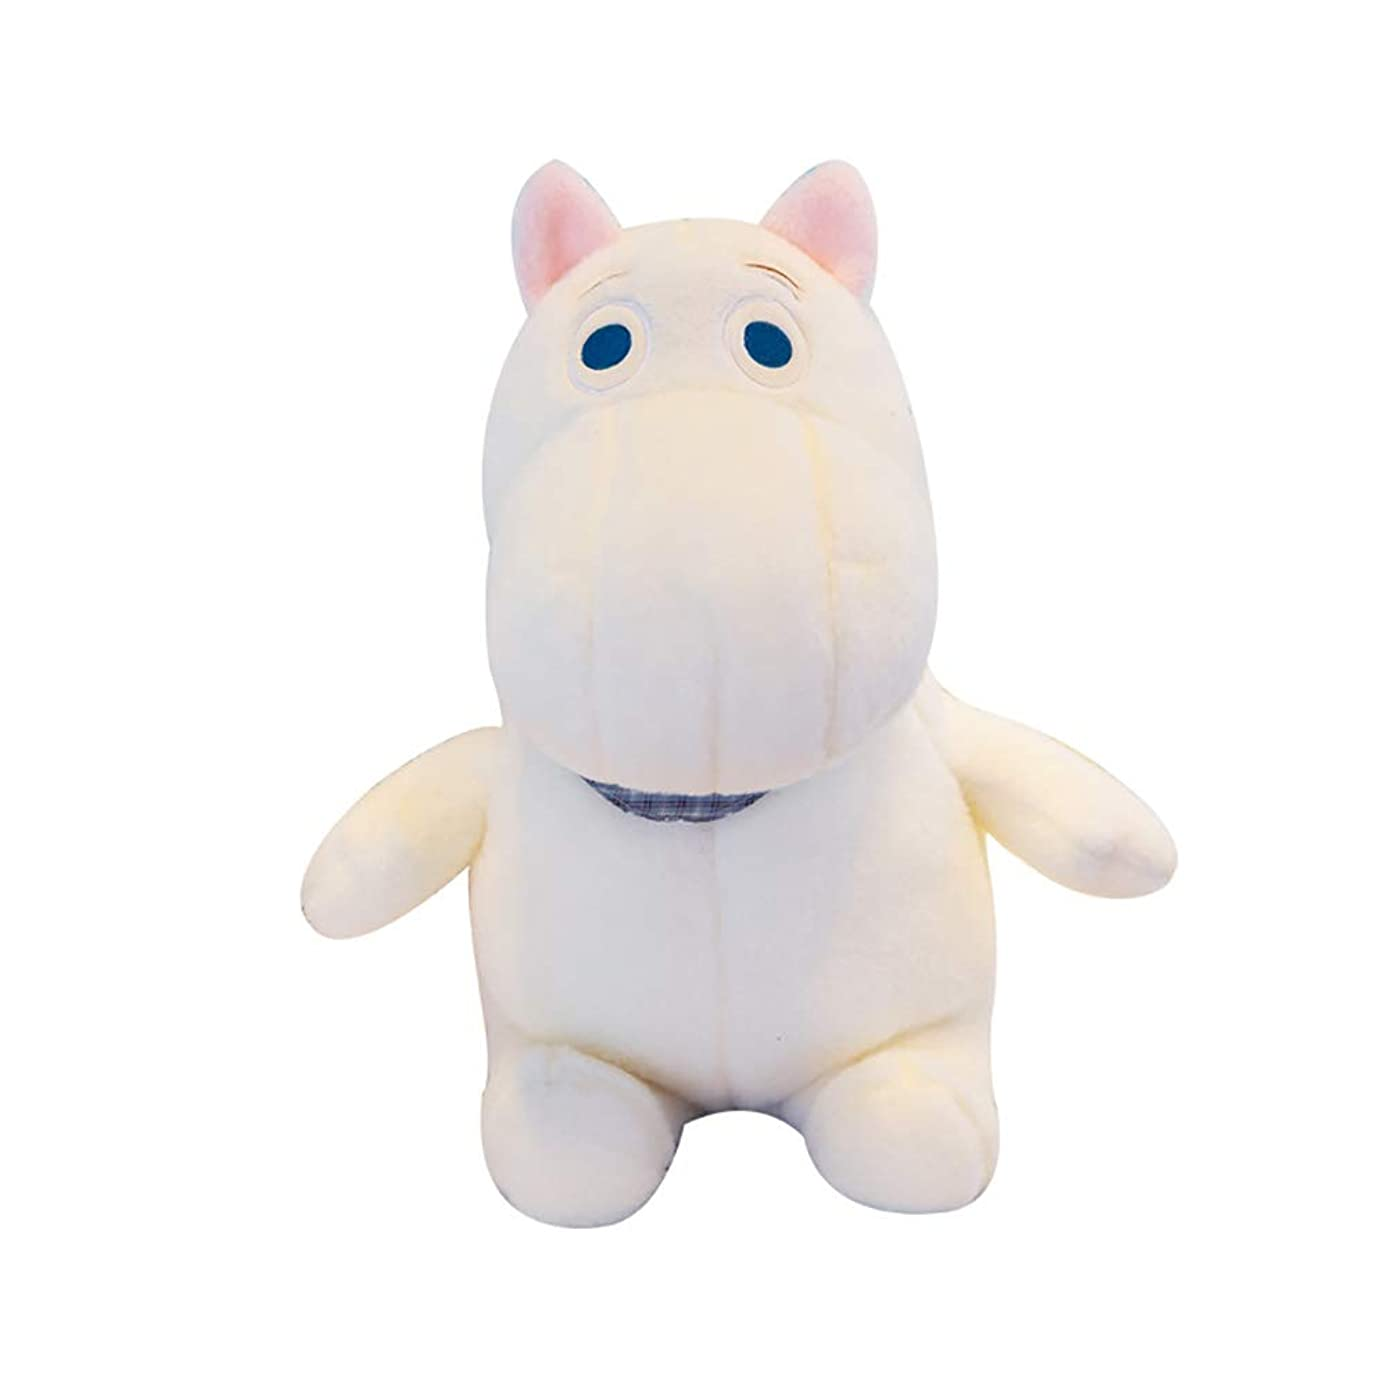 SOOKi Hippo Plush Toy Pillow, 50cm/20in Cute Hippo Stuffed Animals Doll Toy Gifts for Valentine's Gift, Sofa Chair